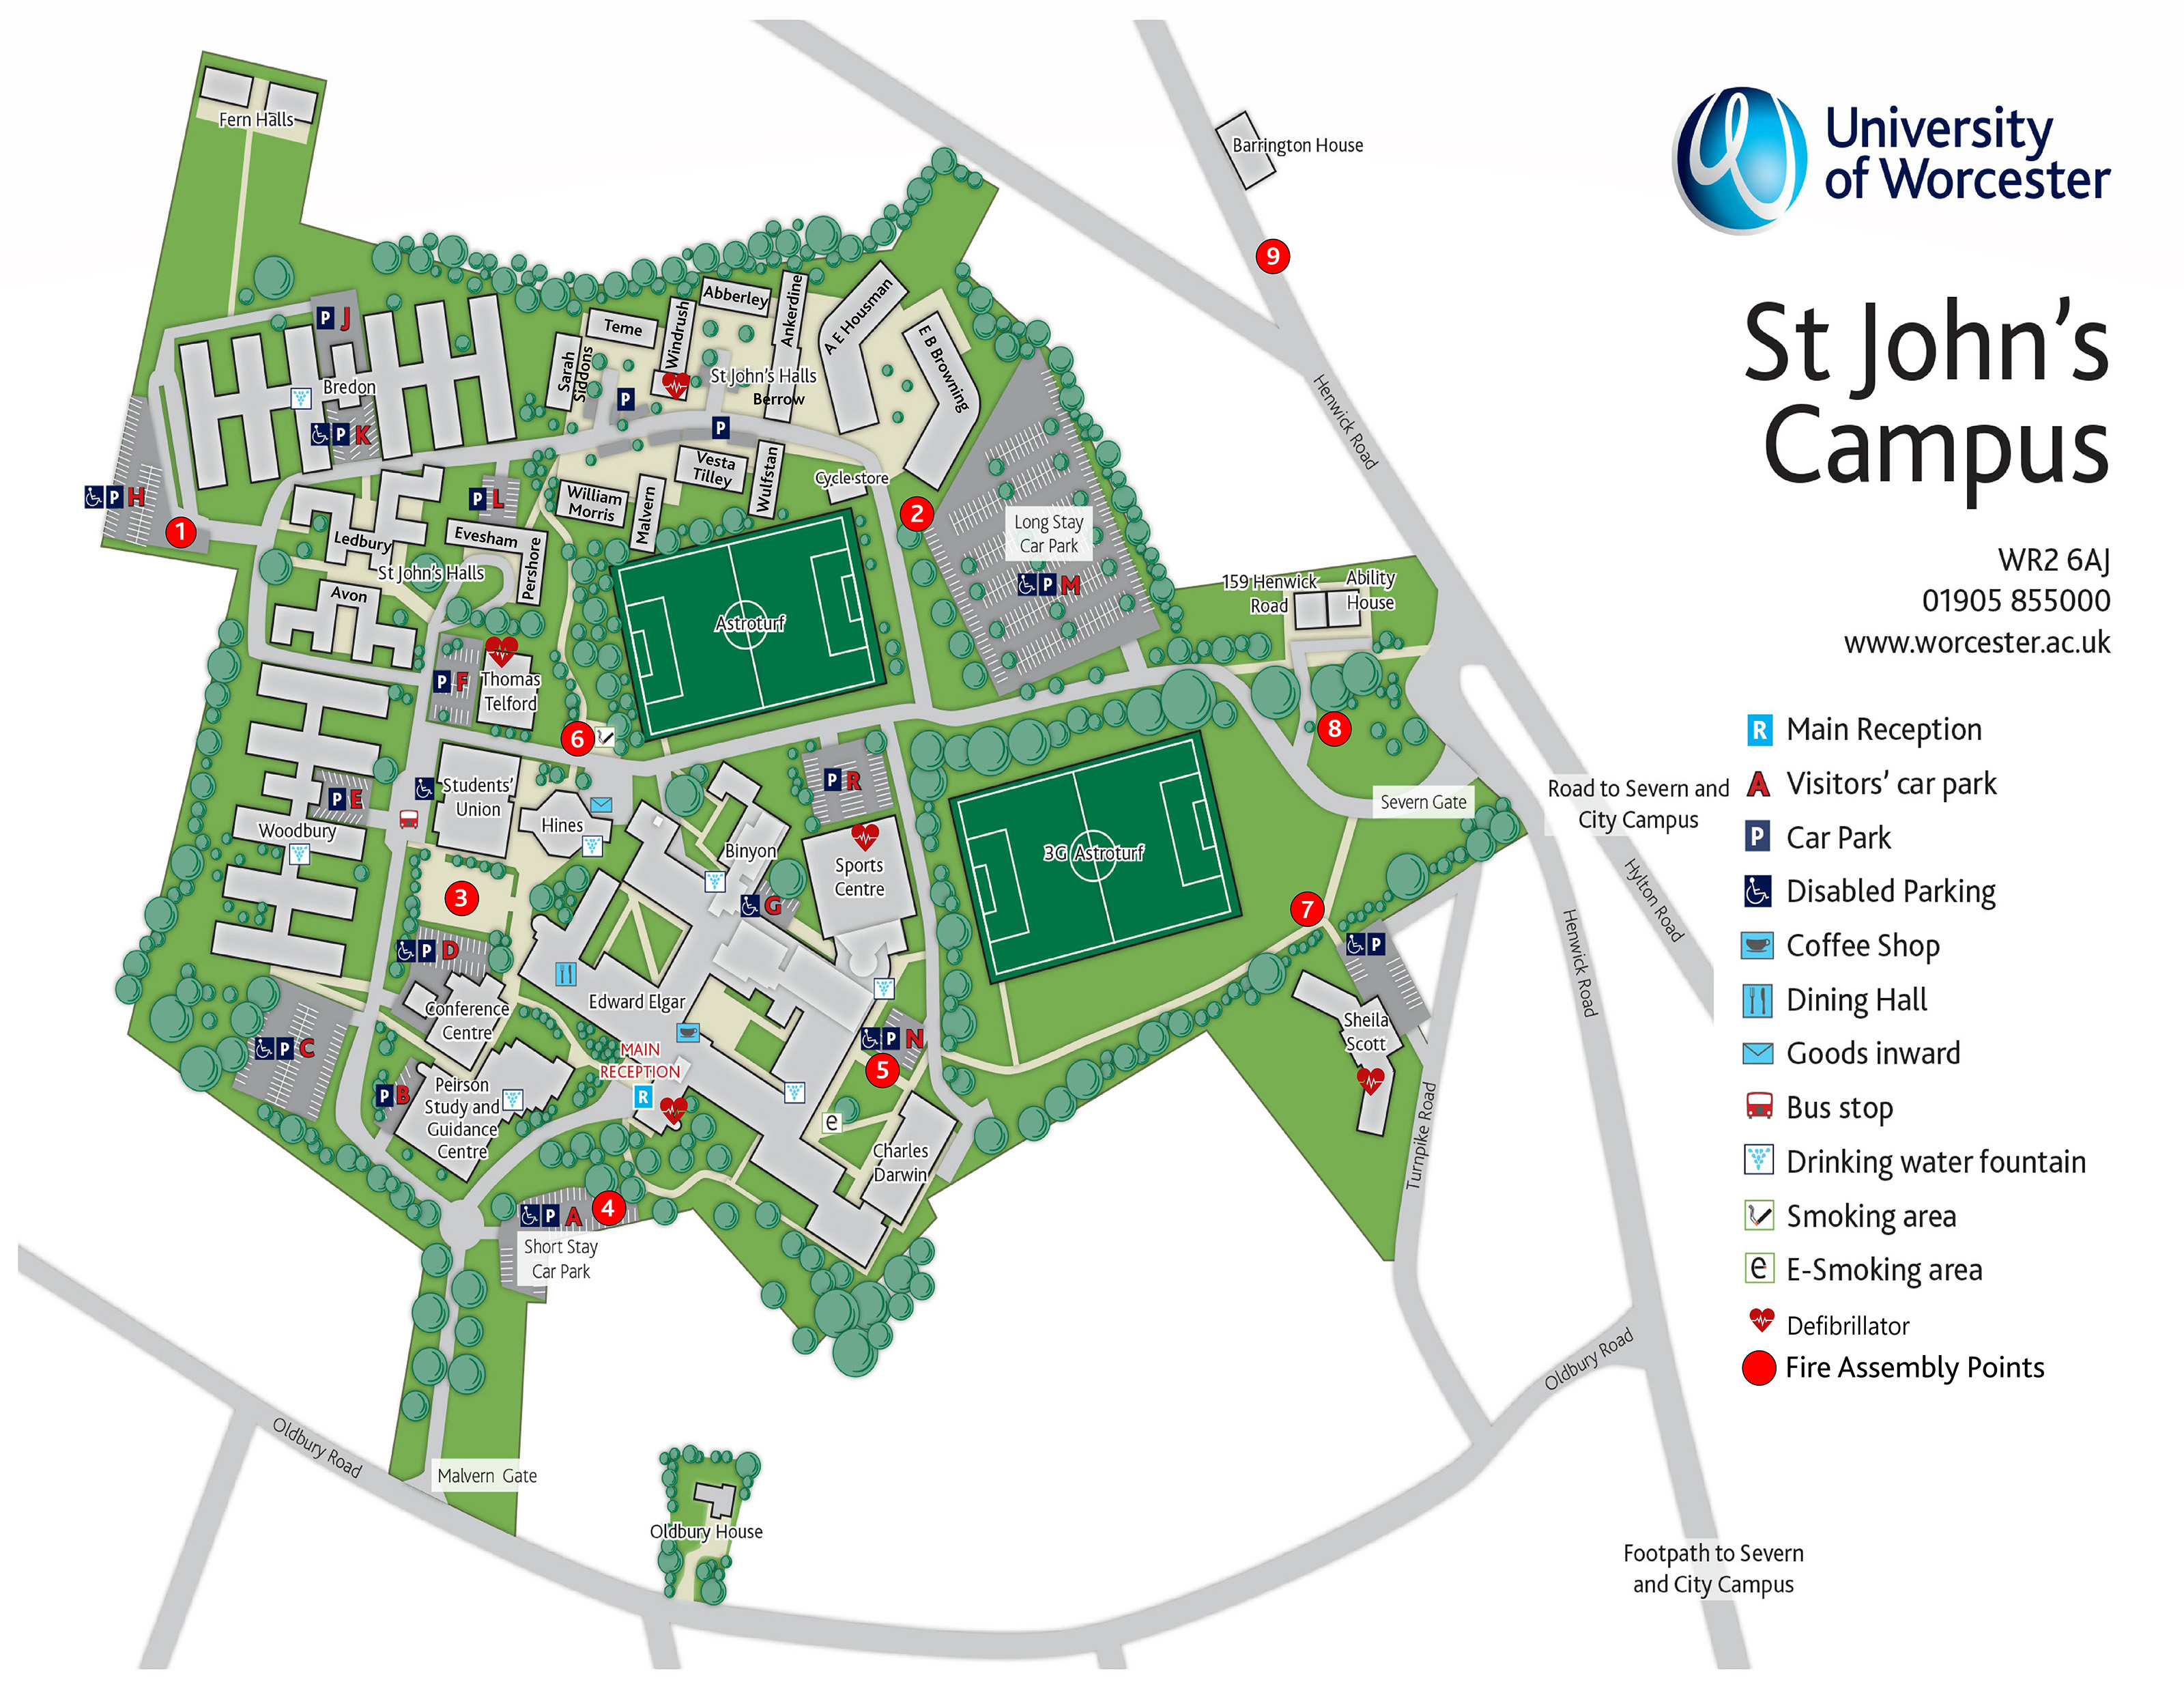 university of worcester campus map University Of Worcester Human Resources Fire Emergency university of worcester campus map